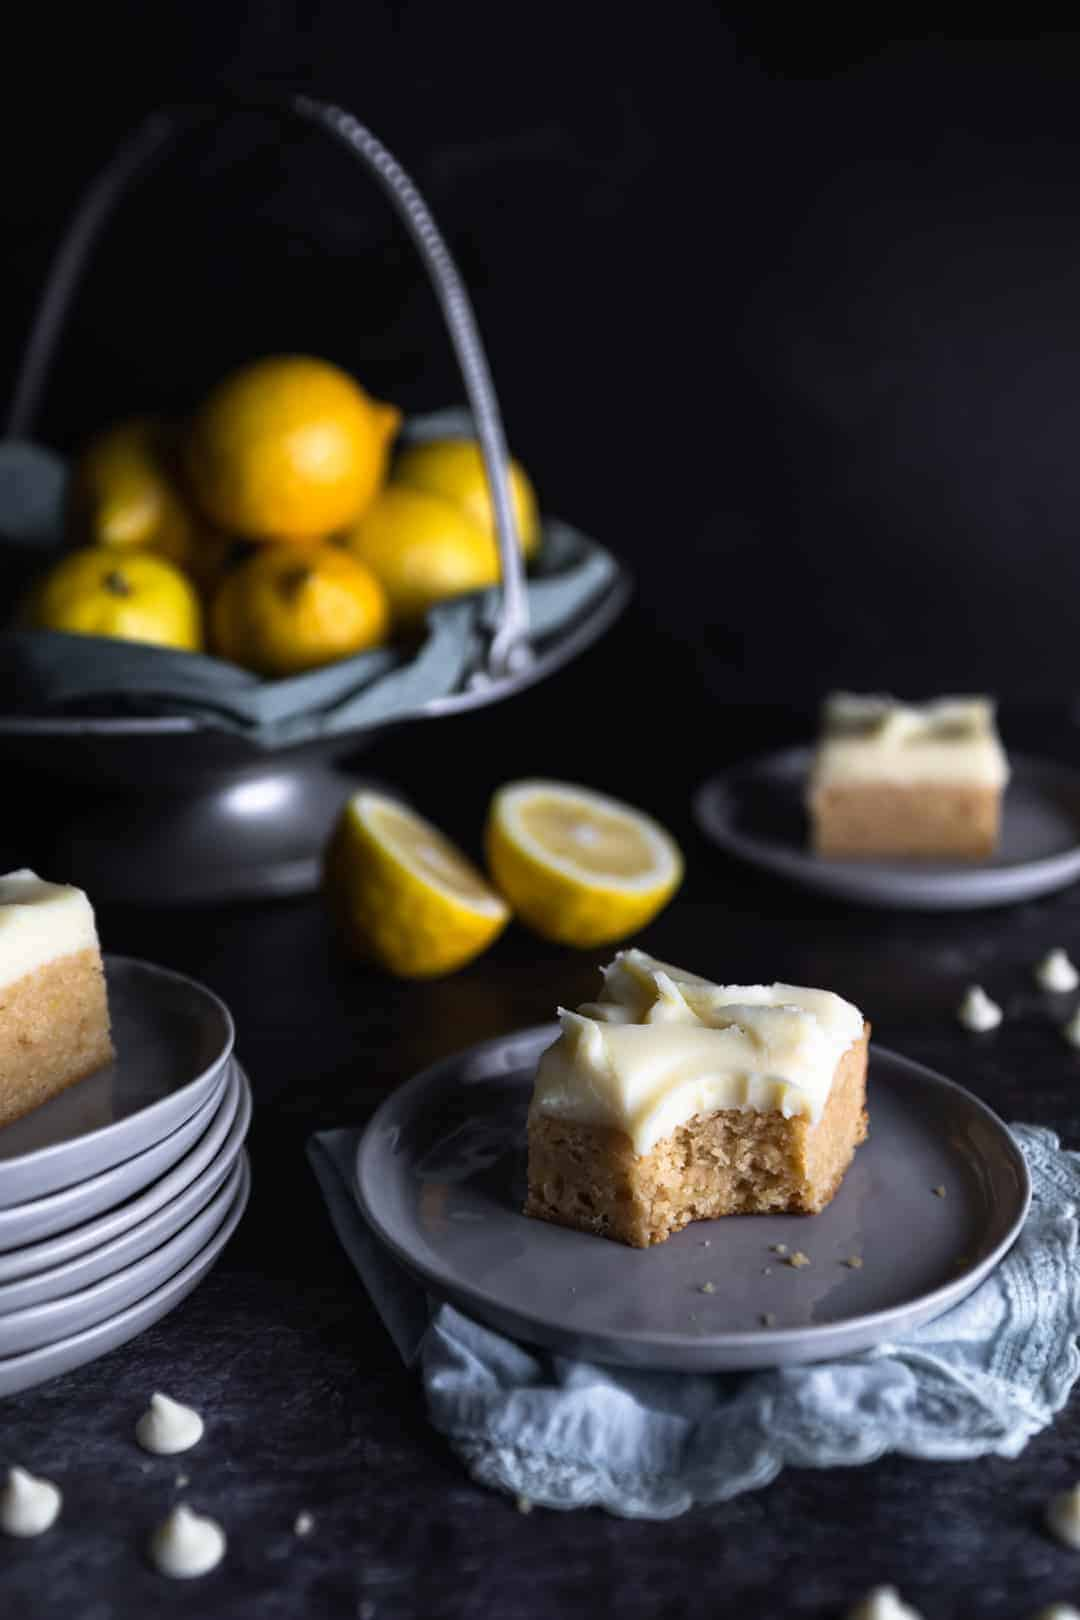 A lemon blondie with white chocolate ganache frosting on a small plate with one bite taken out. Two other blondies are on small plates nearby, white chocolate chips are scattered around and a big bowl of lemons are in the background